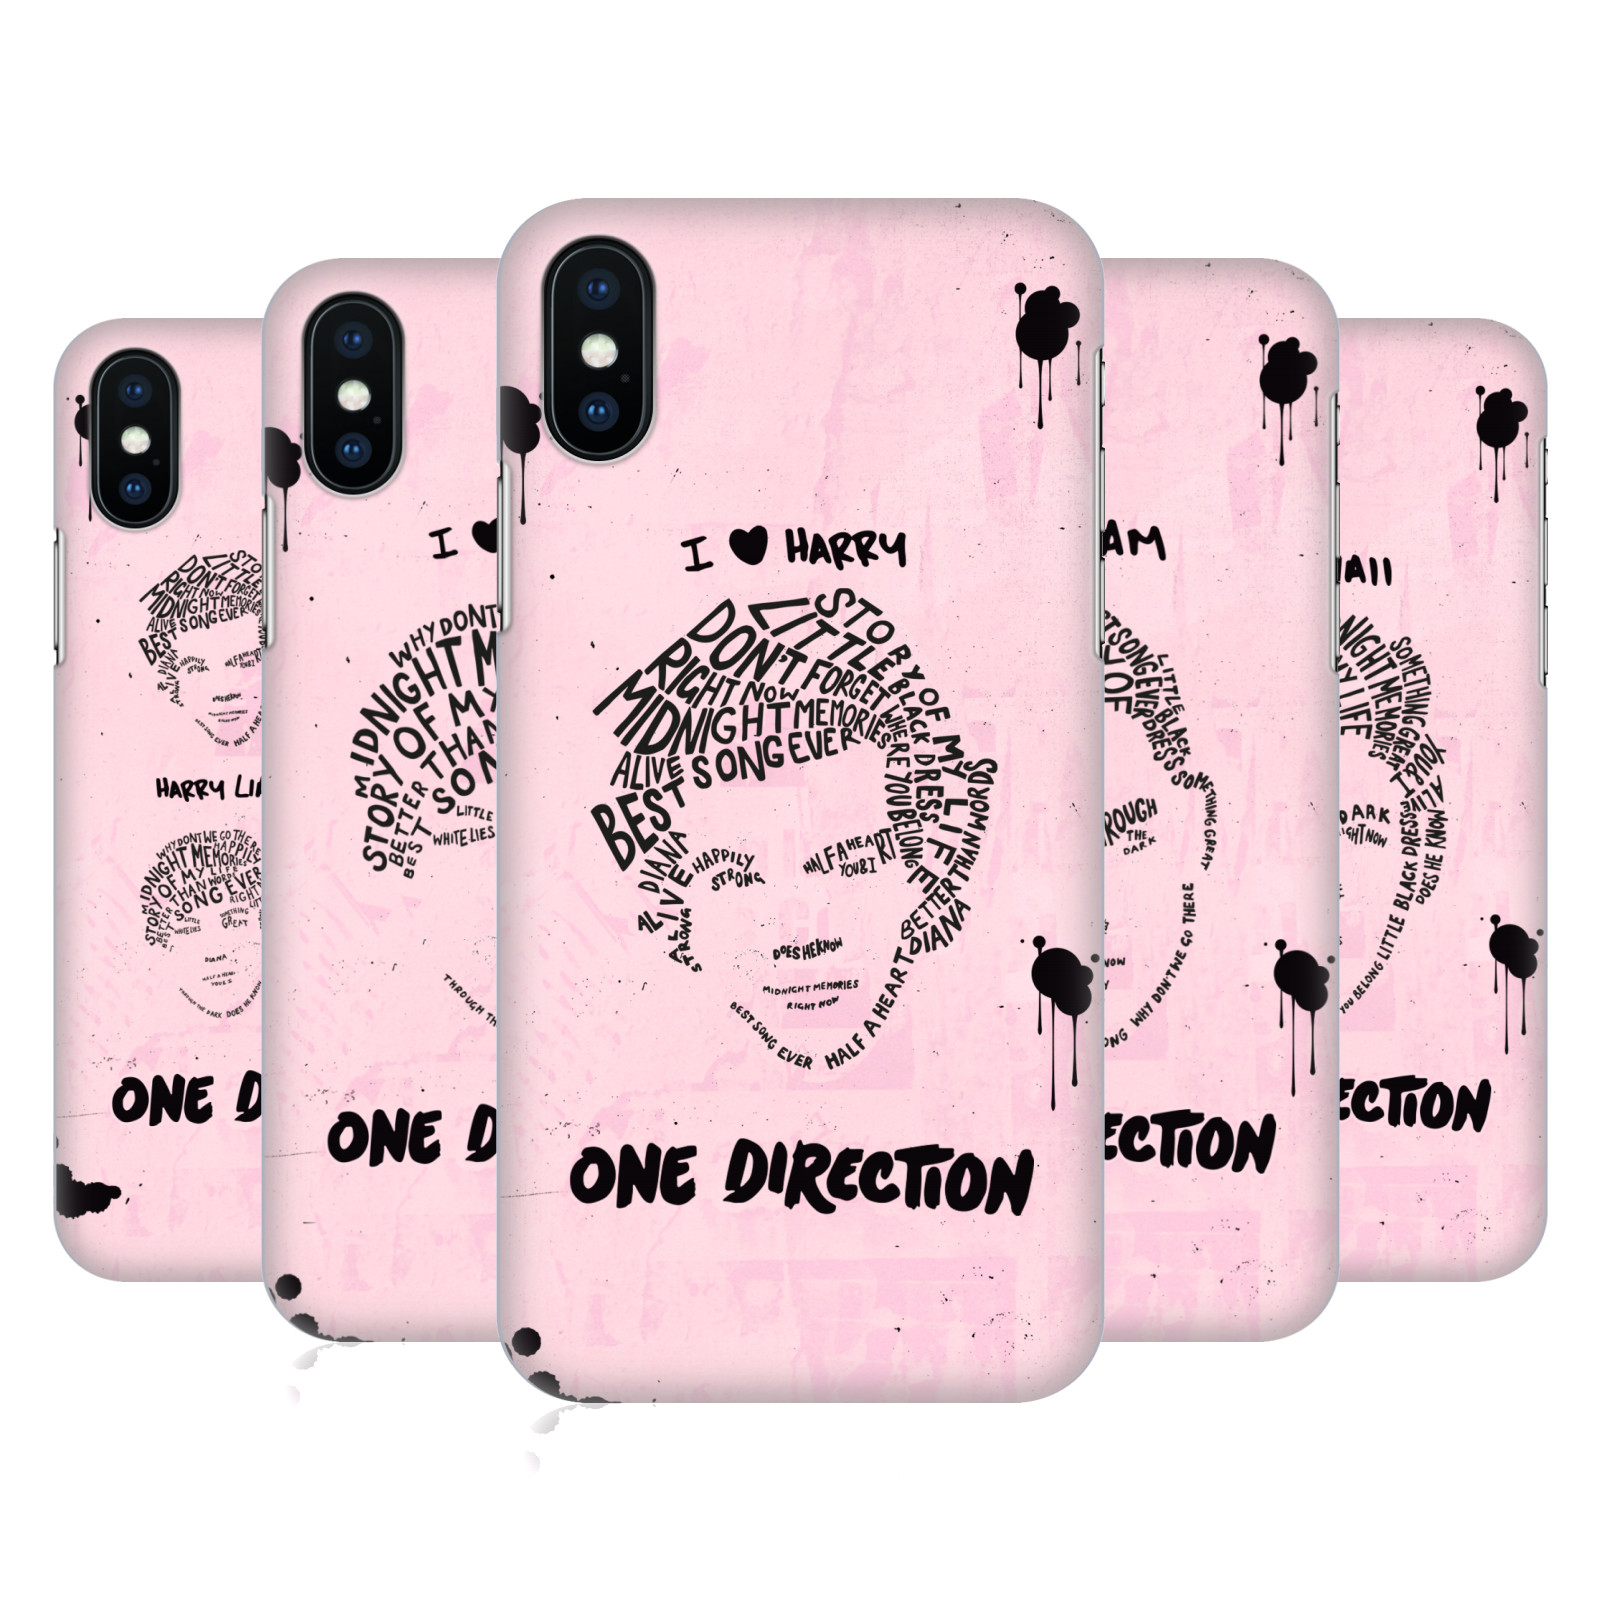 One Direction Text Illustration Faces